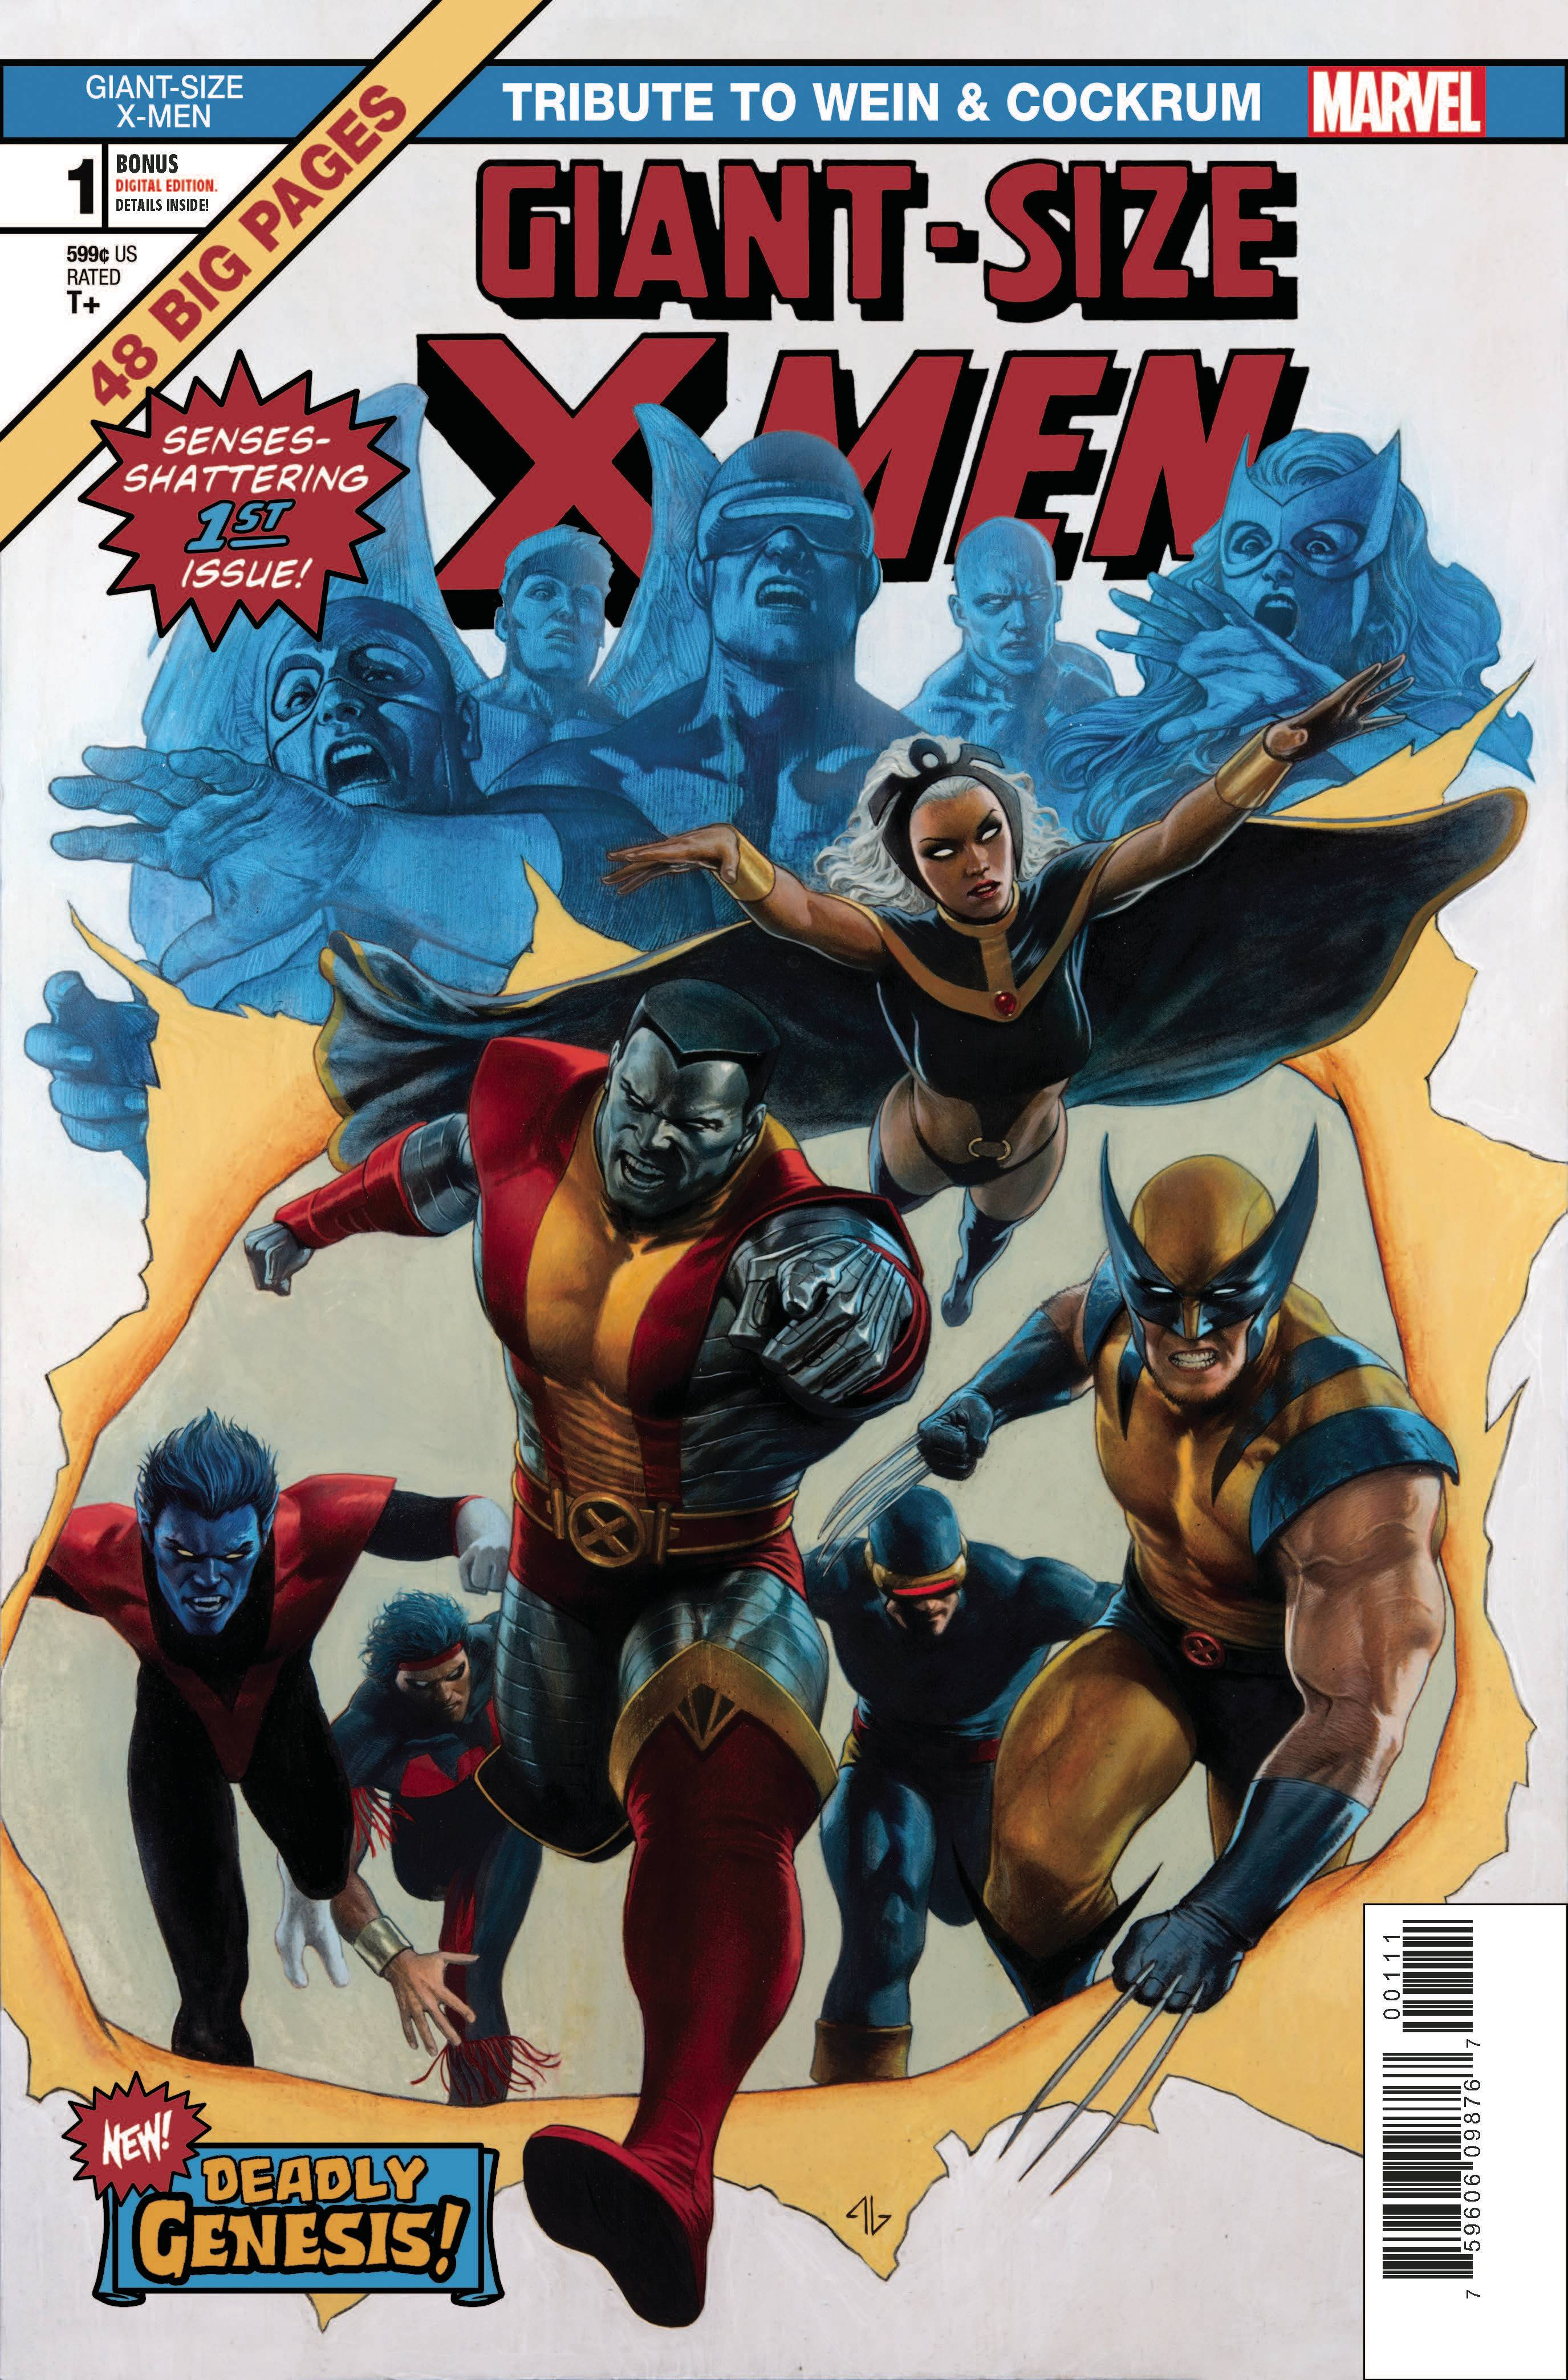 GIANT SIZE X-MEN: TRIBUTE TO WEIN & COCKRUM #1